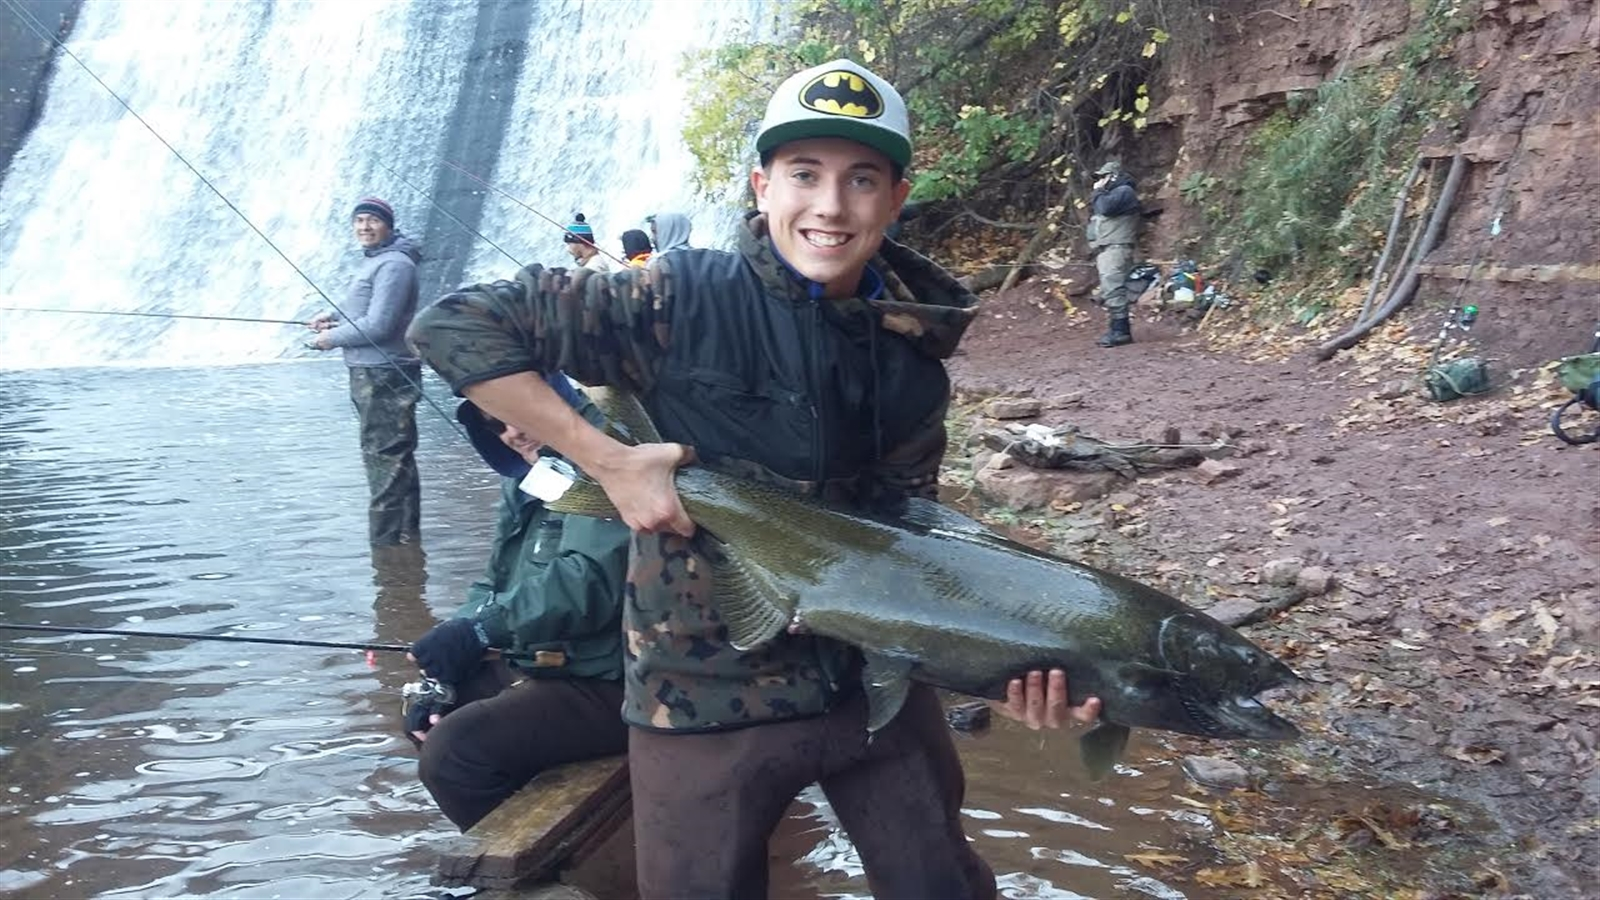 Evan Rohe of Cheektowaga caught this nice king at Burt Dam on 18 Mile Creek.